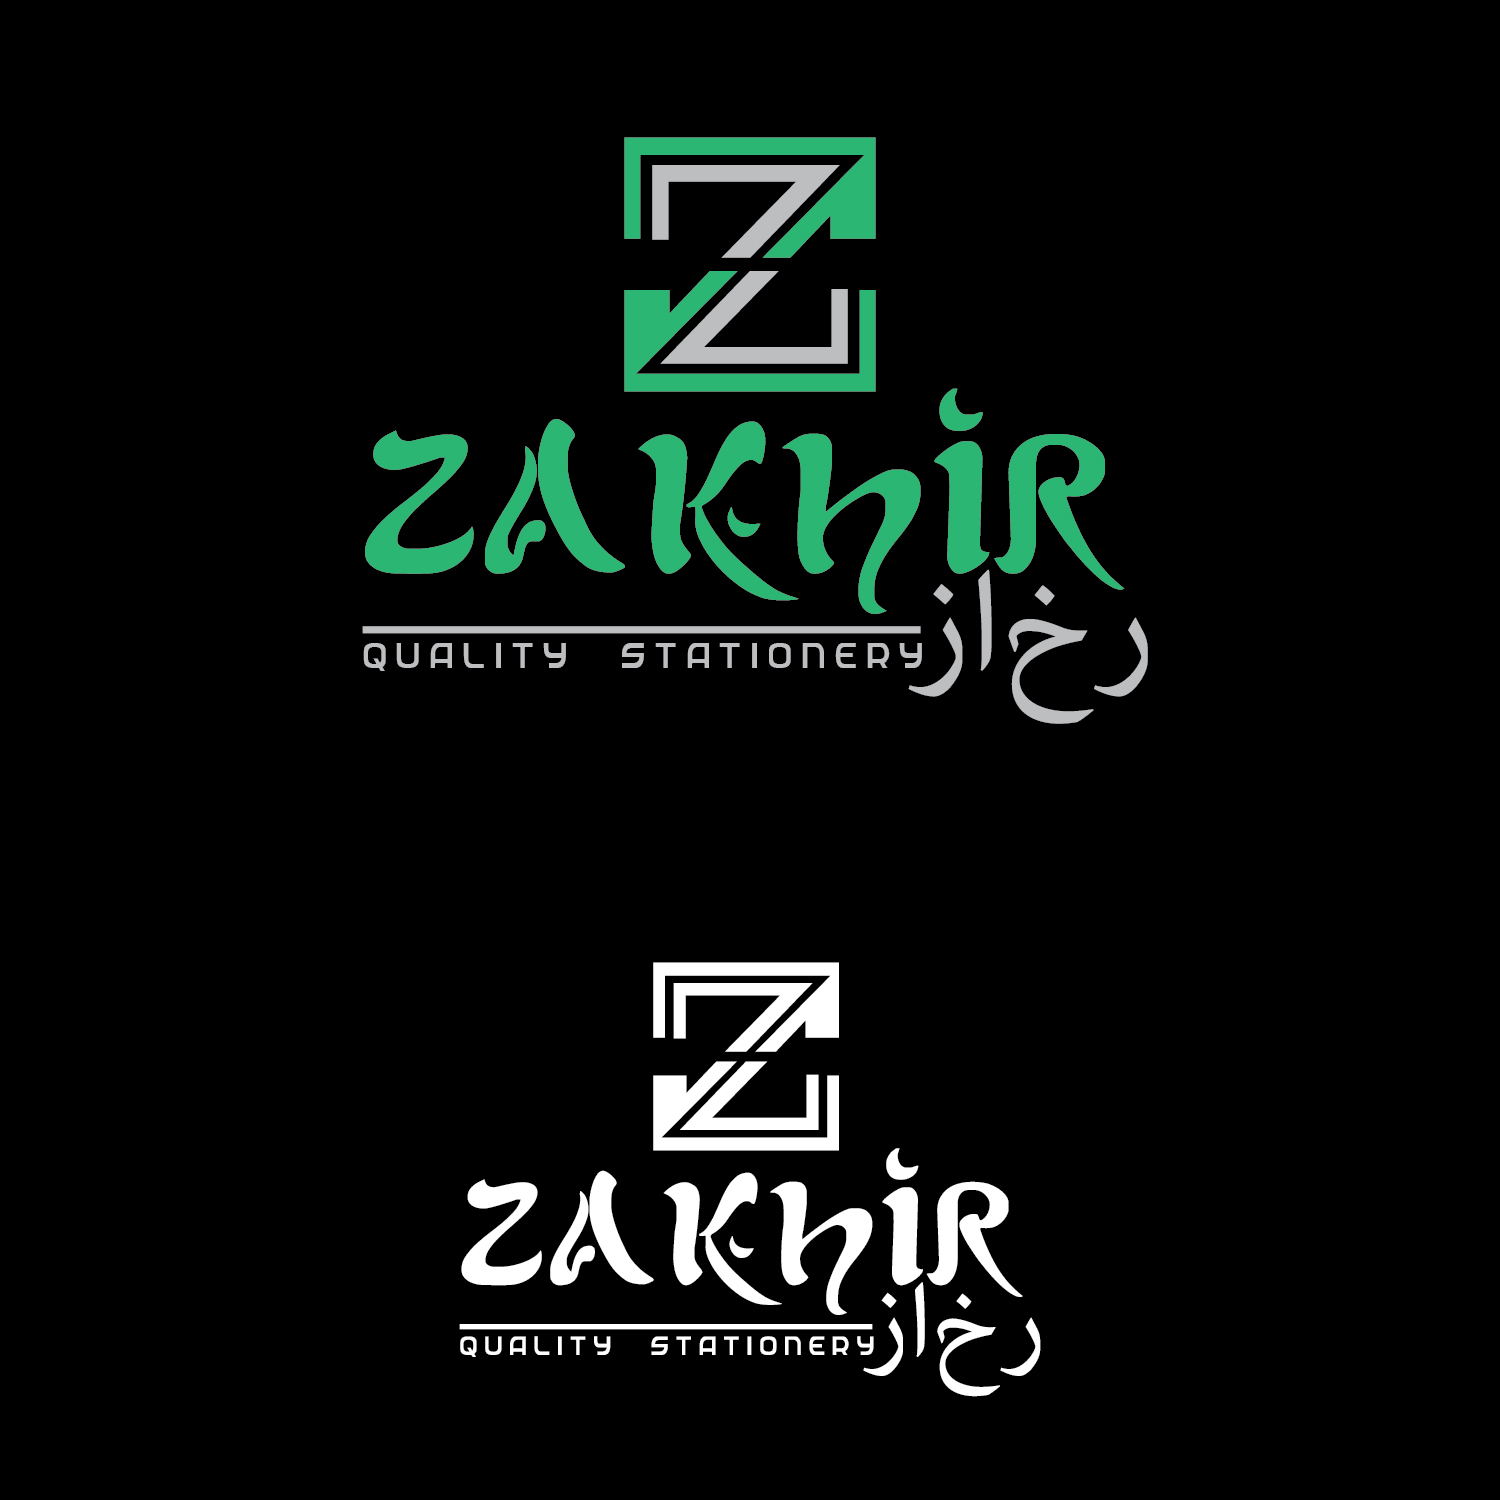 Logo Design by lagalag - Entry No. 67 in the Logo Design Contest Zakhir Logo Design.